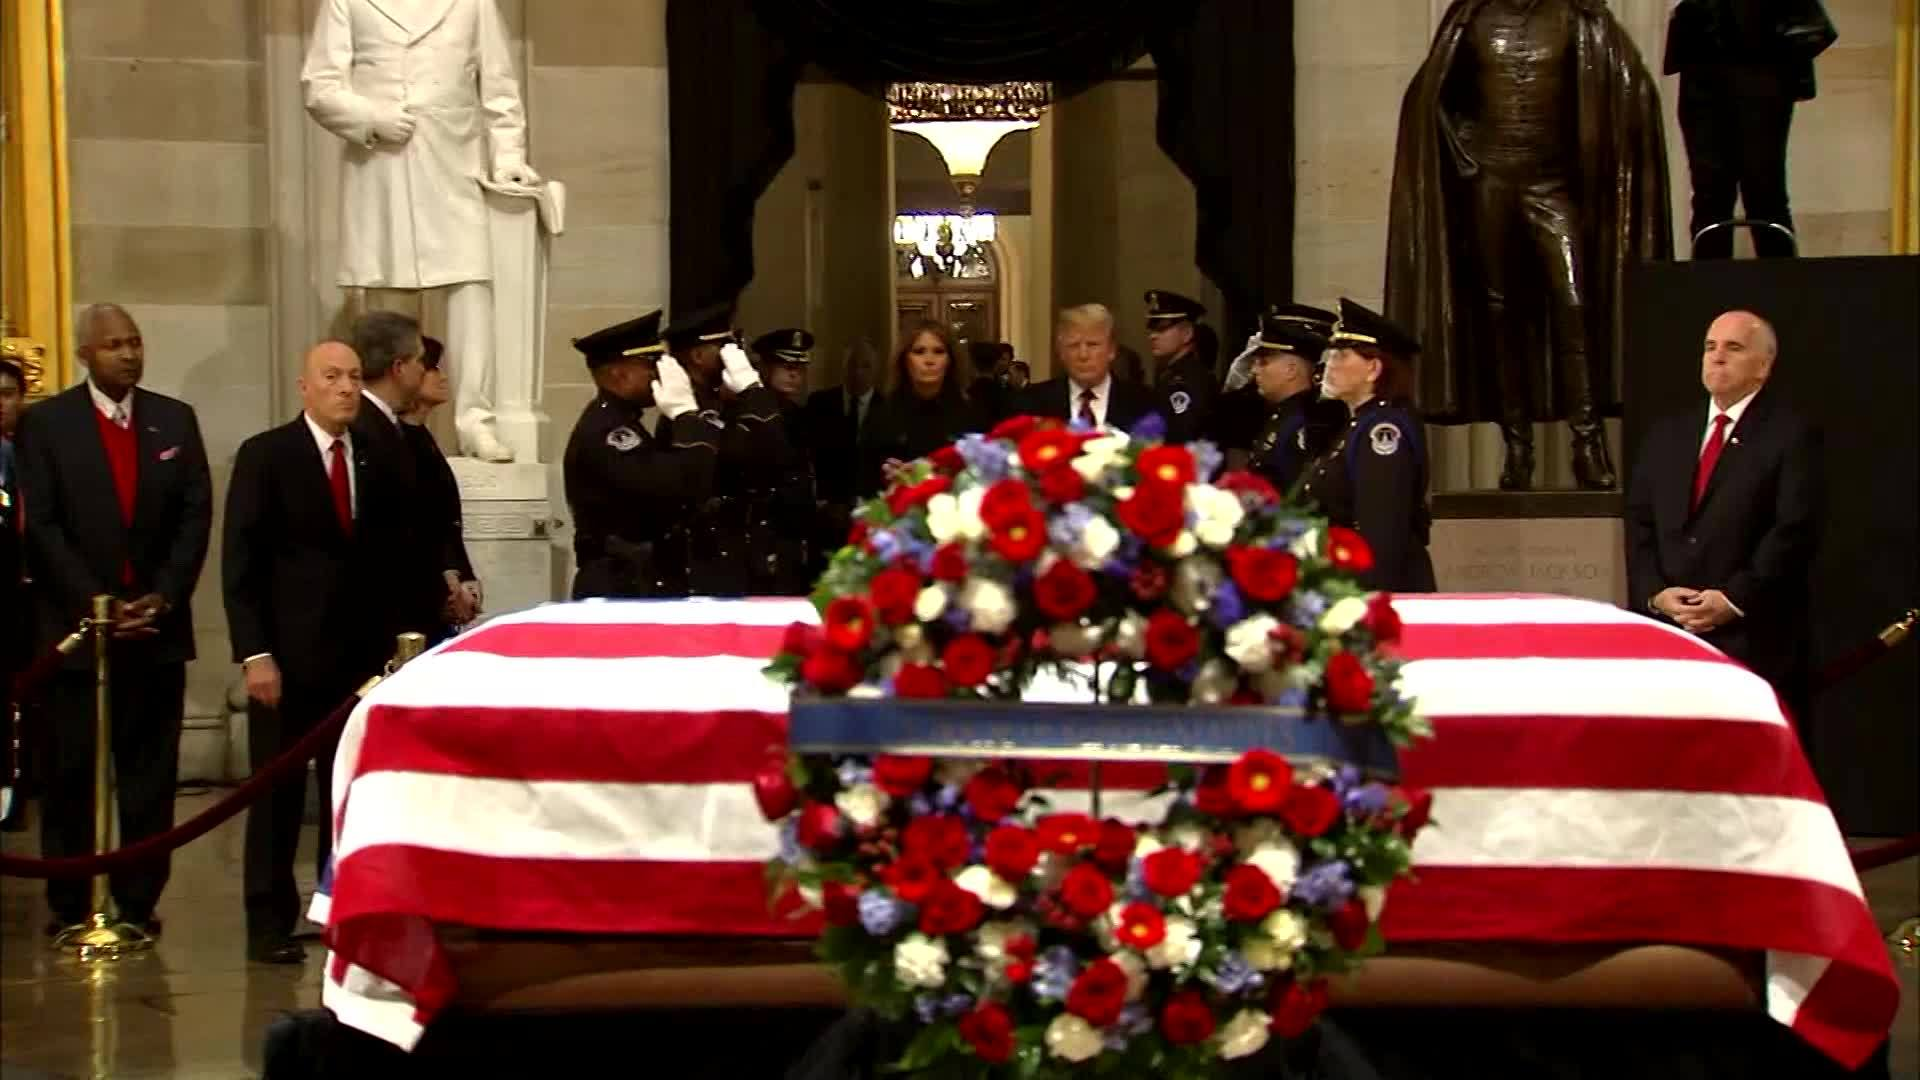 VIDEO: President Trump, First Lady pay respects to late President George H.W. Bush